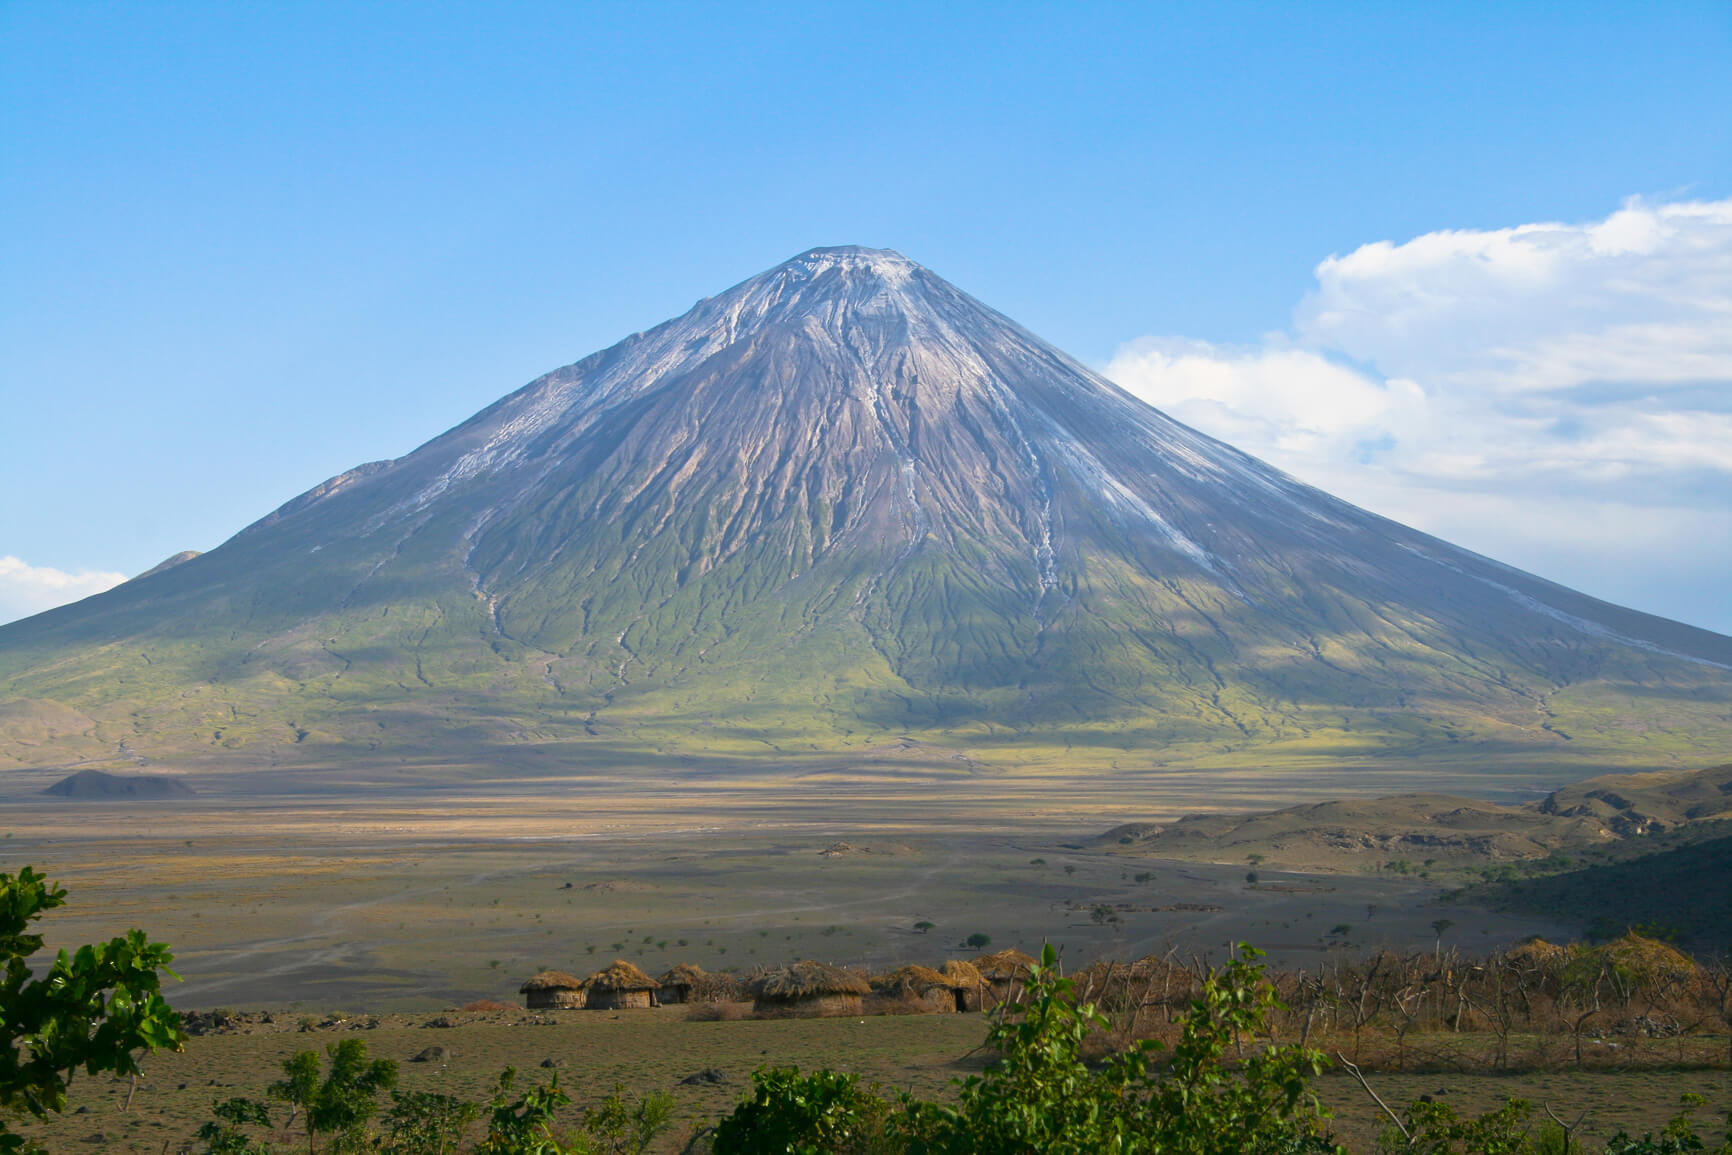 New York to Kilimanjaro, Tanzania for only $666 roundtrip